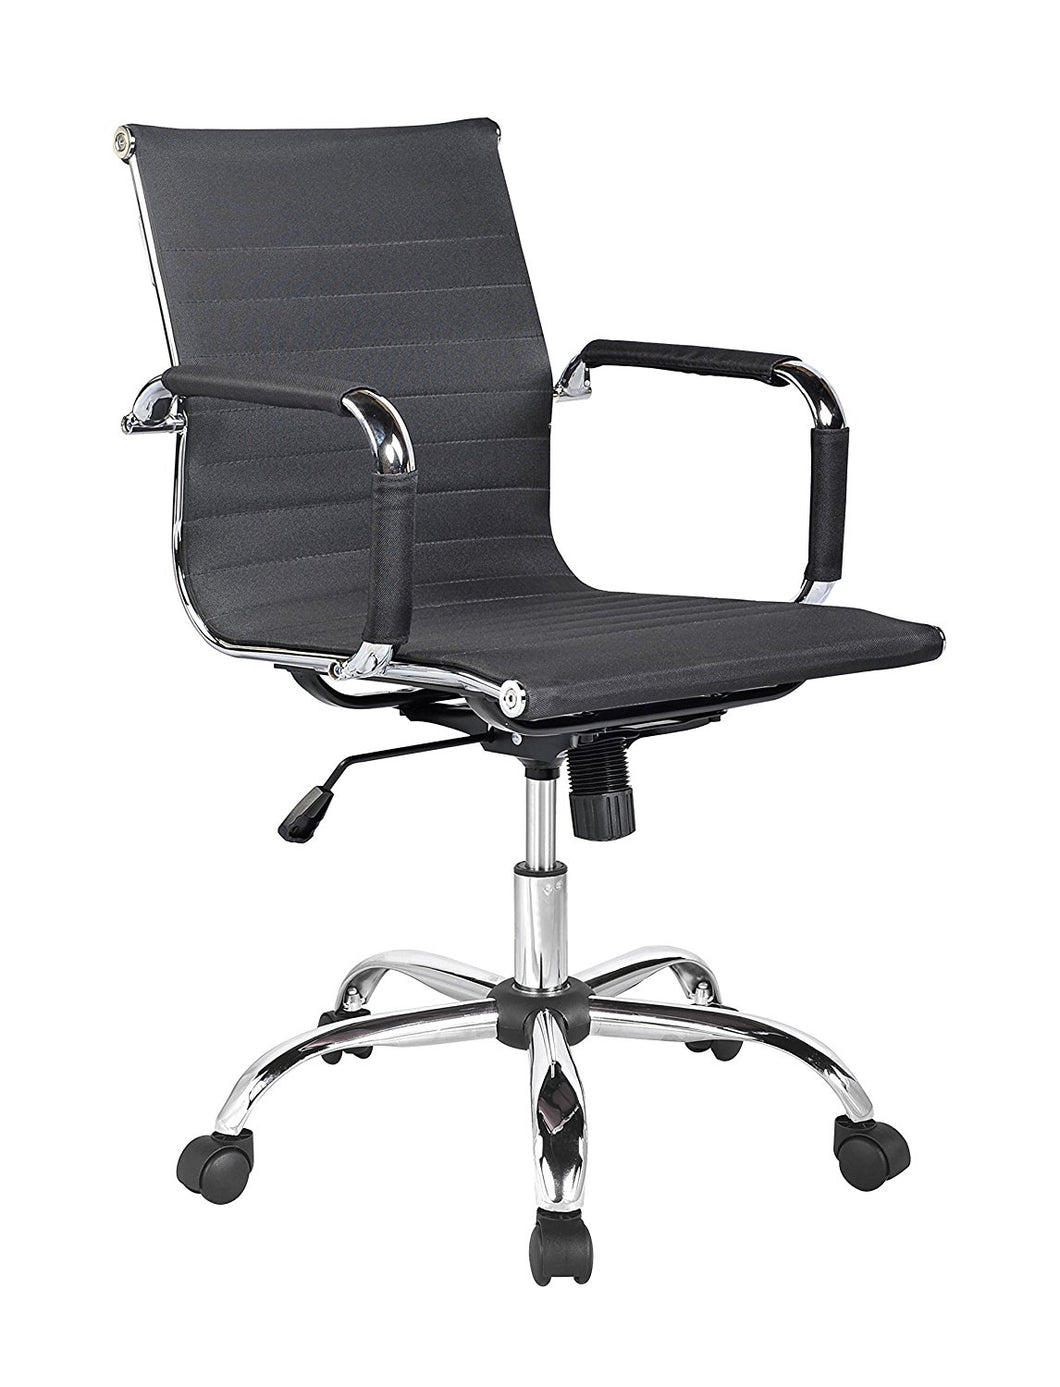 Winport Mid-Back Fabric Office & Home Desk Chair TB-5051F